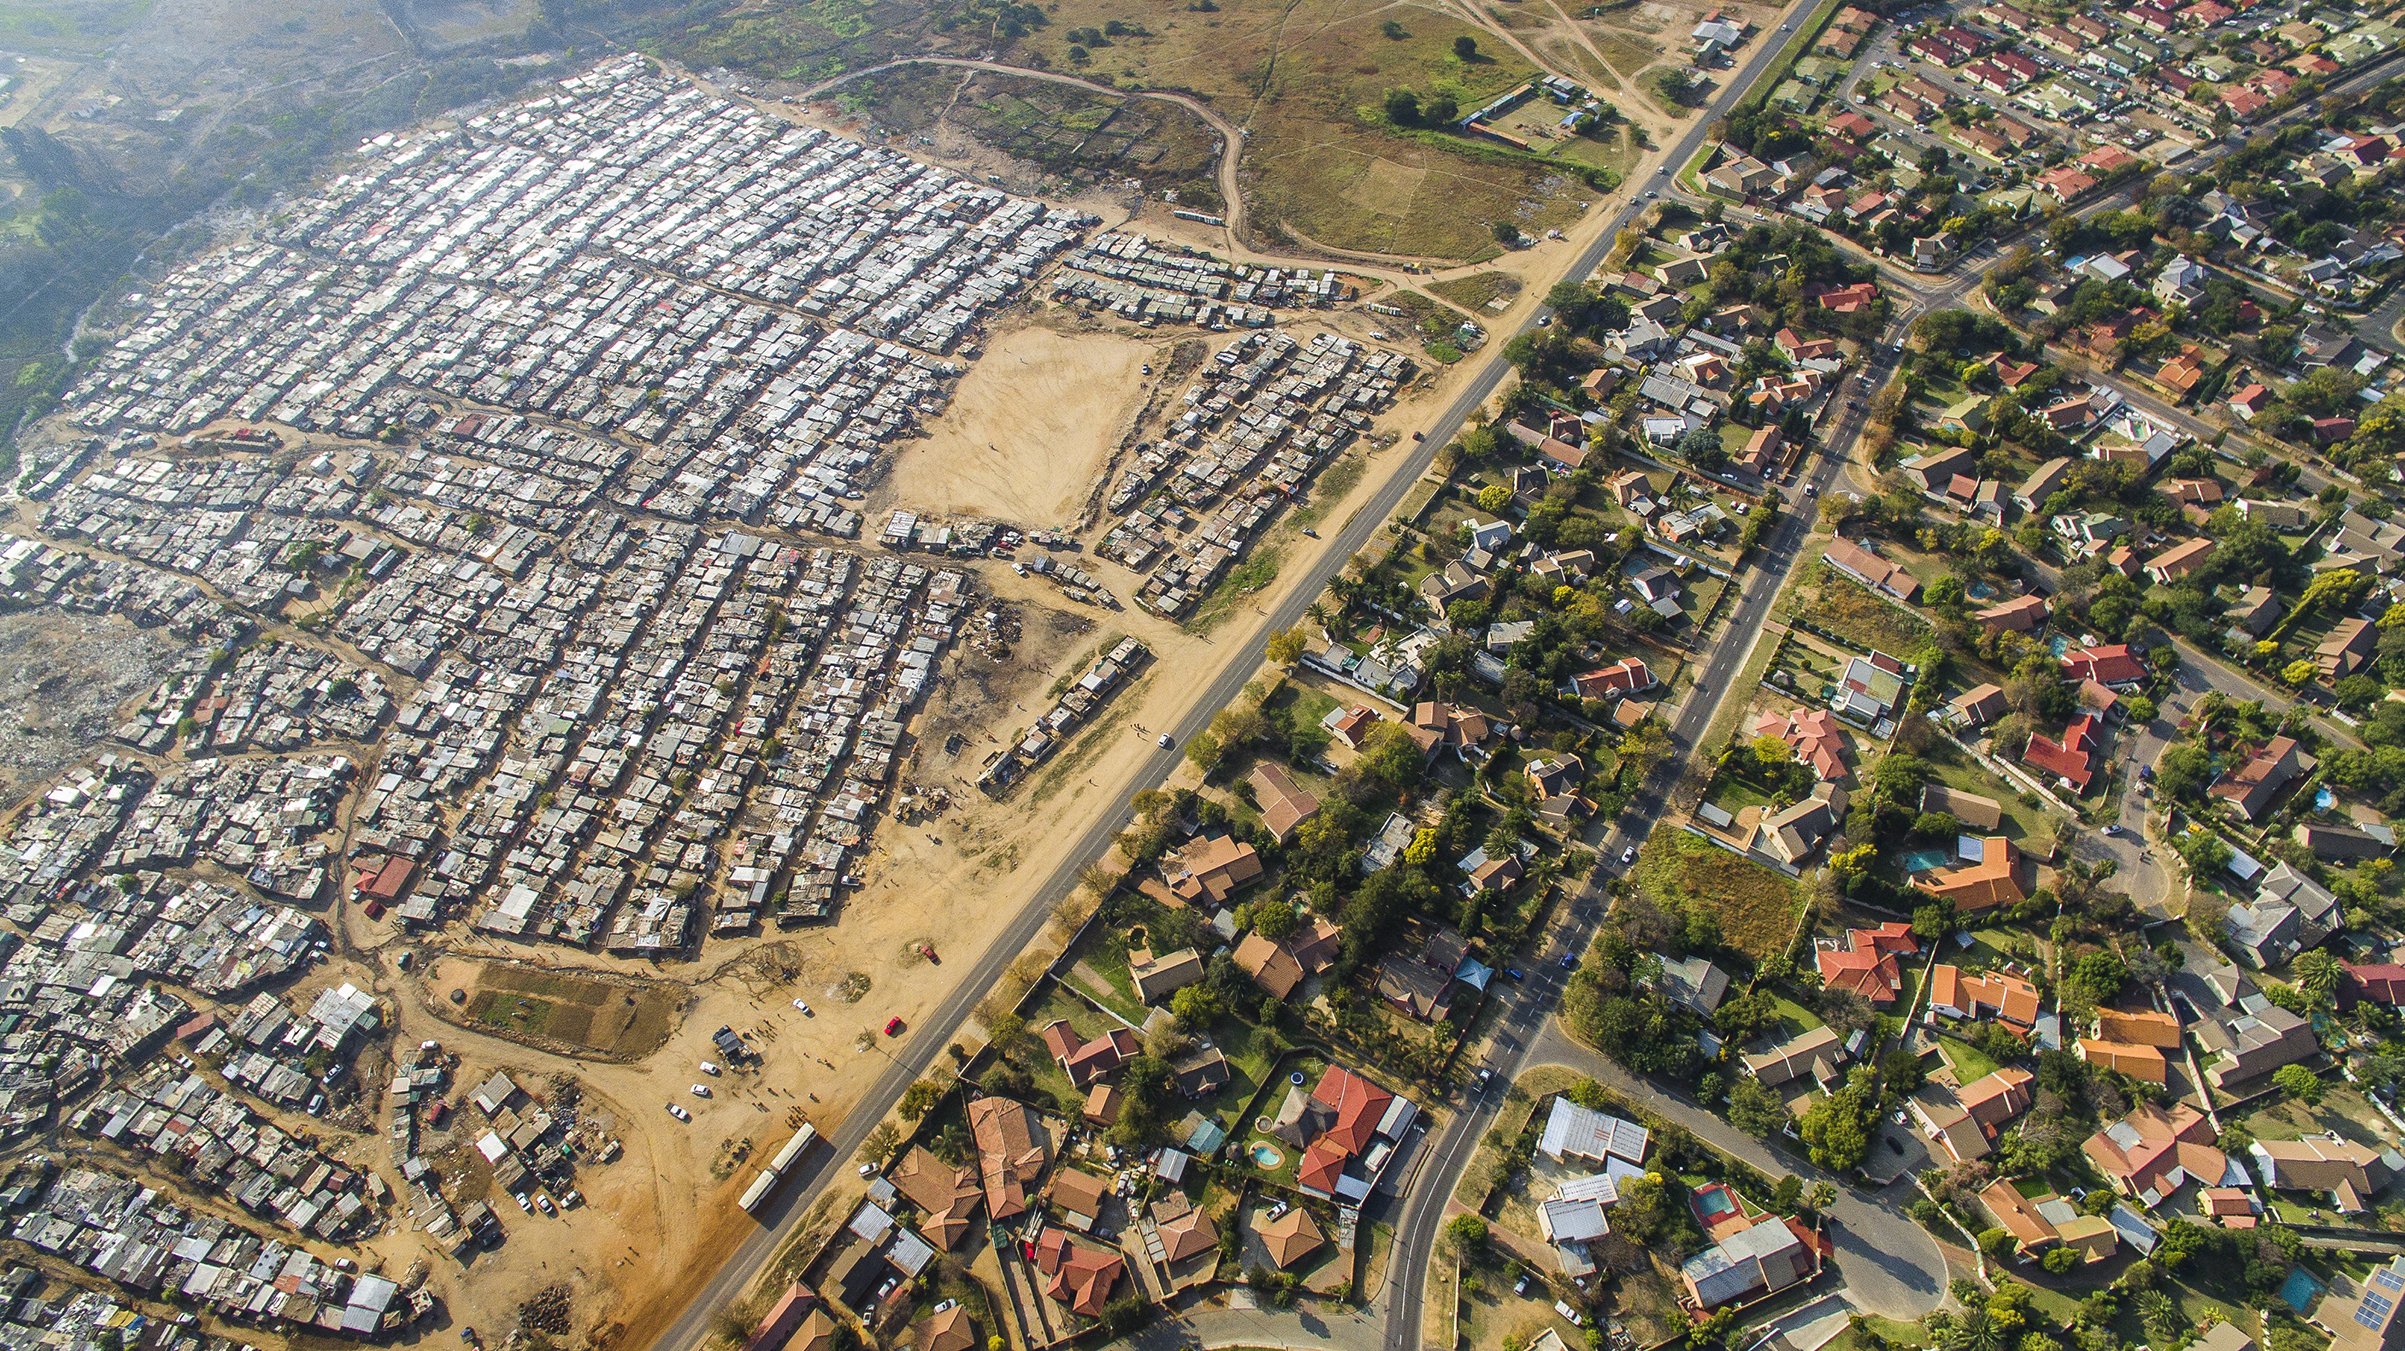 Inequality is found around the globe, but the World Bank says South Africa qualifies as the starkest example. For a vivid perspective on it, Johnny Miller of the Unequal Scenes Project sent a drone over northwest Johannesburg. On the left is Kya Sands, a shack city that is home to many economic migrants who arrived from other African nations. Across the road is Bloubusrand, a middle-class suburb known for its diverse mix of residents.